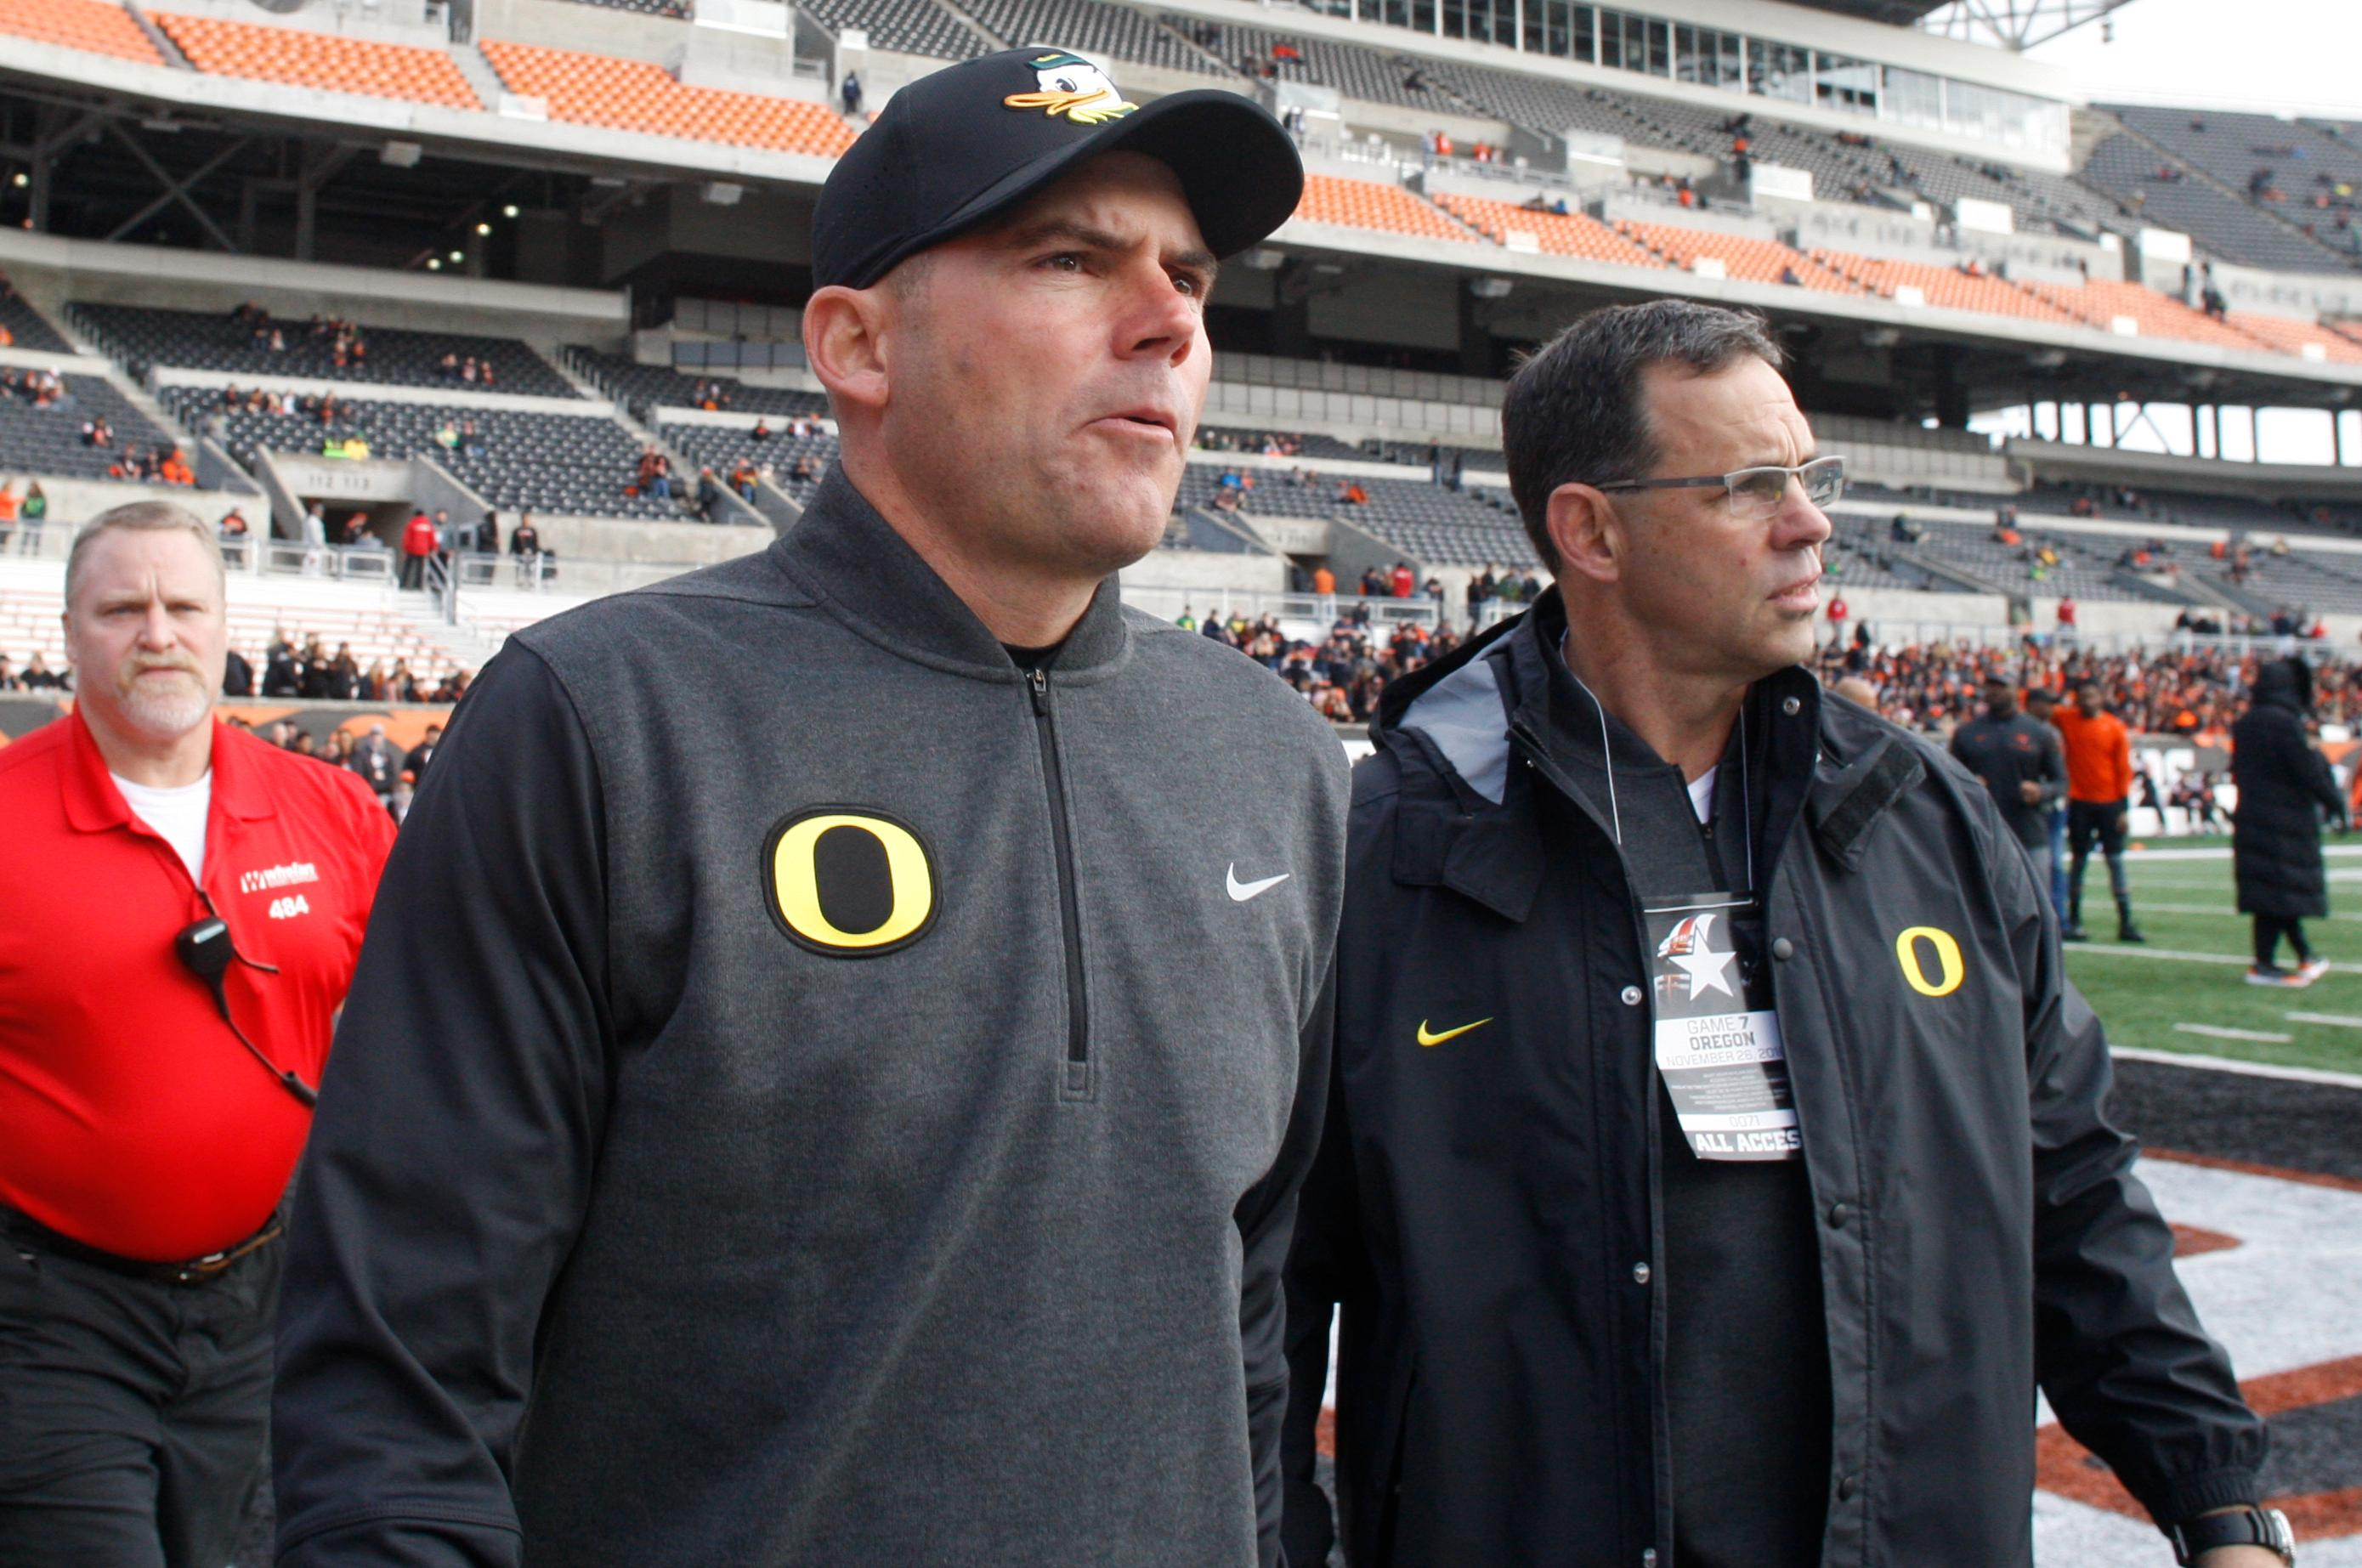 FILE - In this Nov. 26, 2016, file photo, then-Oregon head coach Mark Helfrich, center, comes onto the field for an interview before an NCAA college football game against Oregon State, in Corvallis, Ore. The Chicago Bears have hired former Oregon coach Mark Helfrich as their offensive co-ordinator. The Bears also announced Friday, Jan. 12, 2018, that Chris Tabor will become special teams co-ordinator and Charles London will take over as running backs coach. (AP Photo/Timothy J. Gonzalez, File)